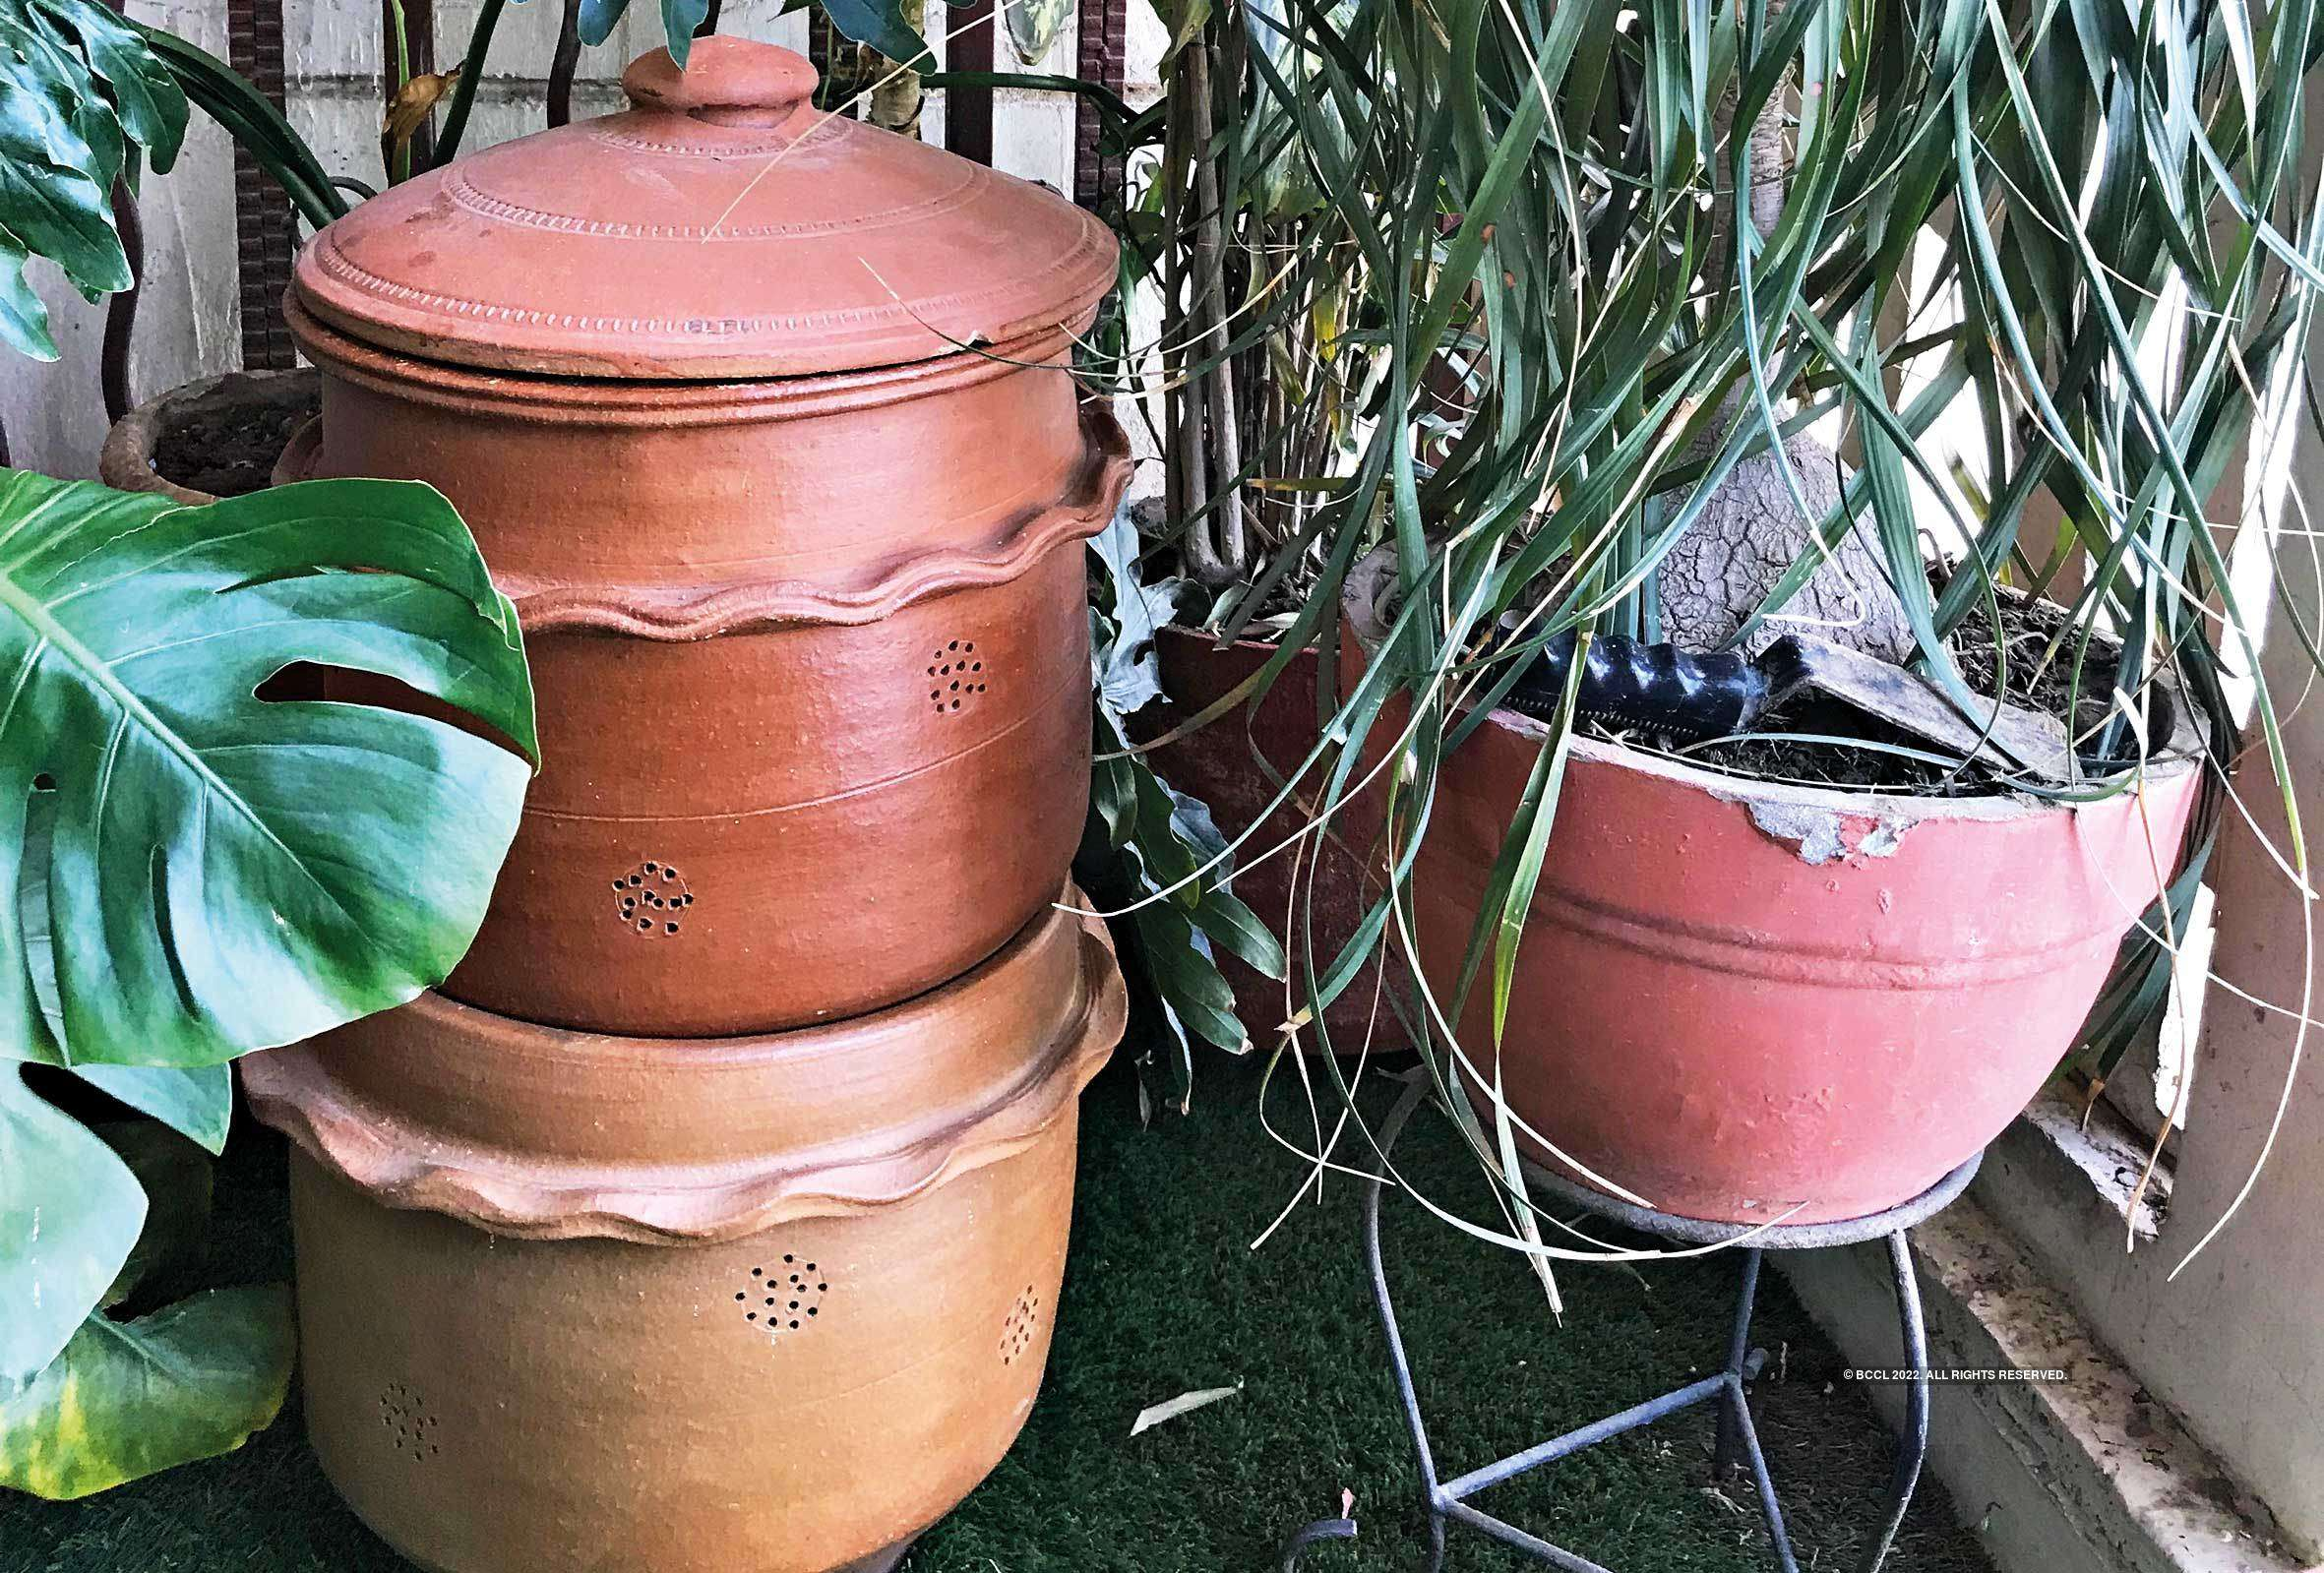 Home composting: The sustainable, easy solution